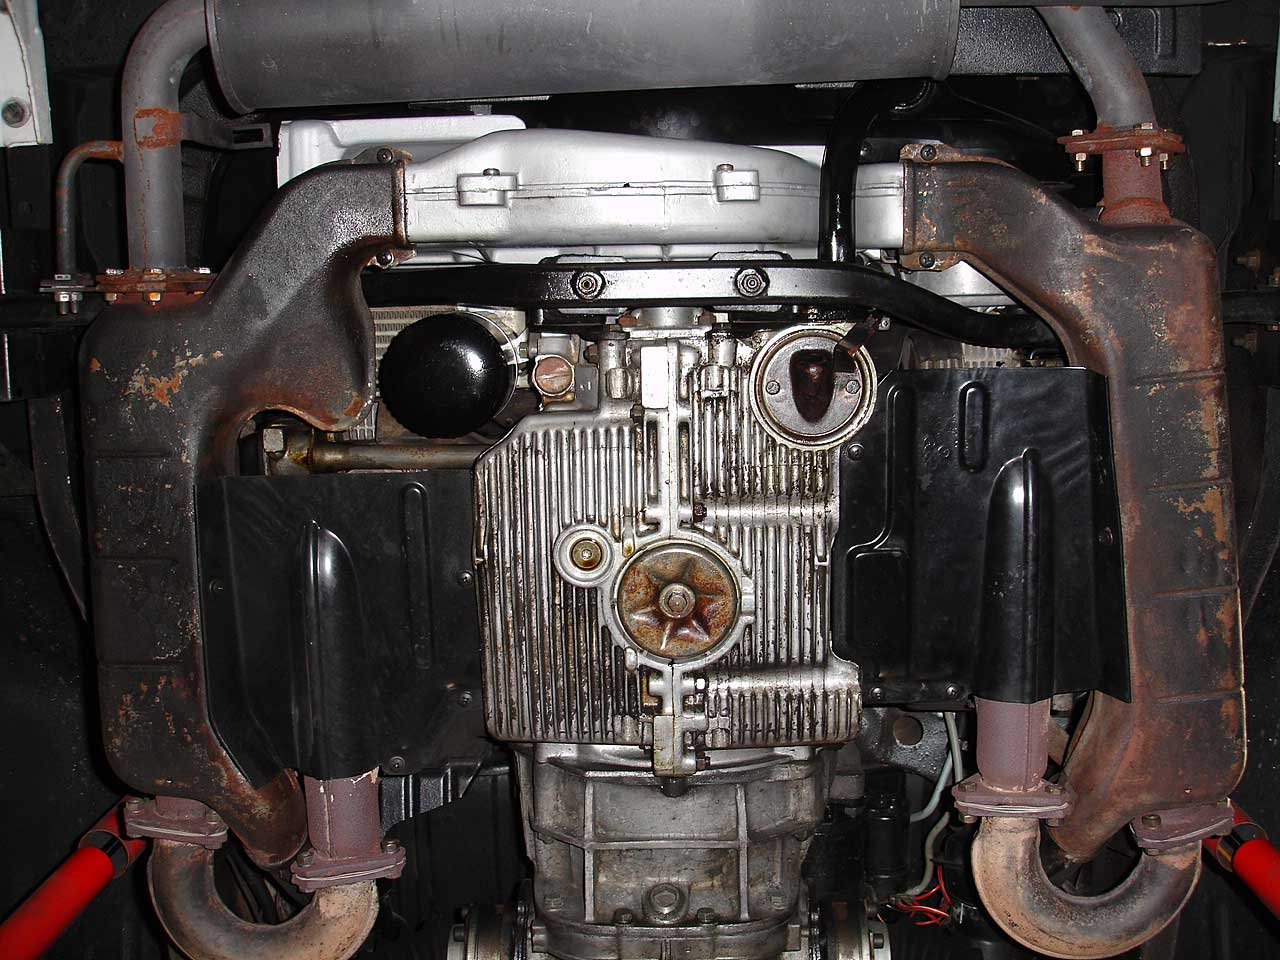 The Volksaru Incubator November 2012 Subaru Boxer 4 Engine Fwd Trans Diagram Ribs On Transmission Took More Work But Eventually Washed Clean As Well Reference Photo